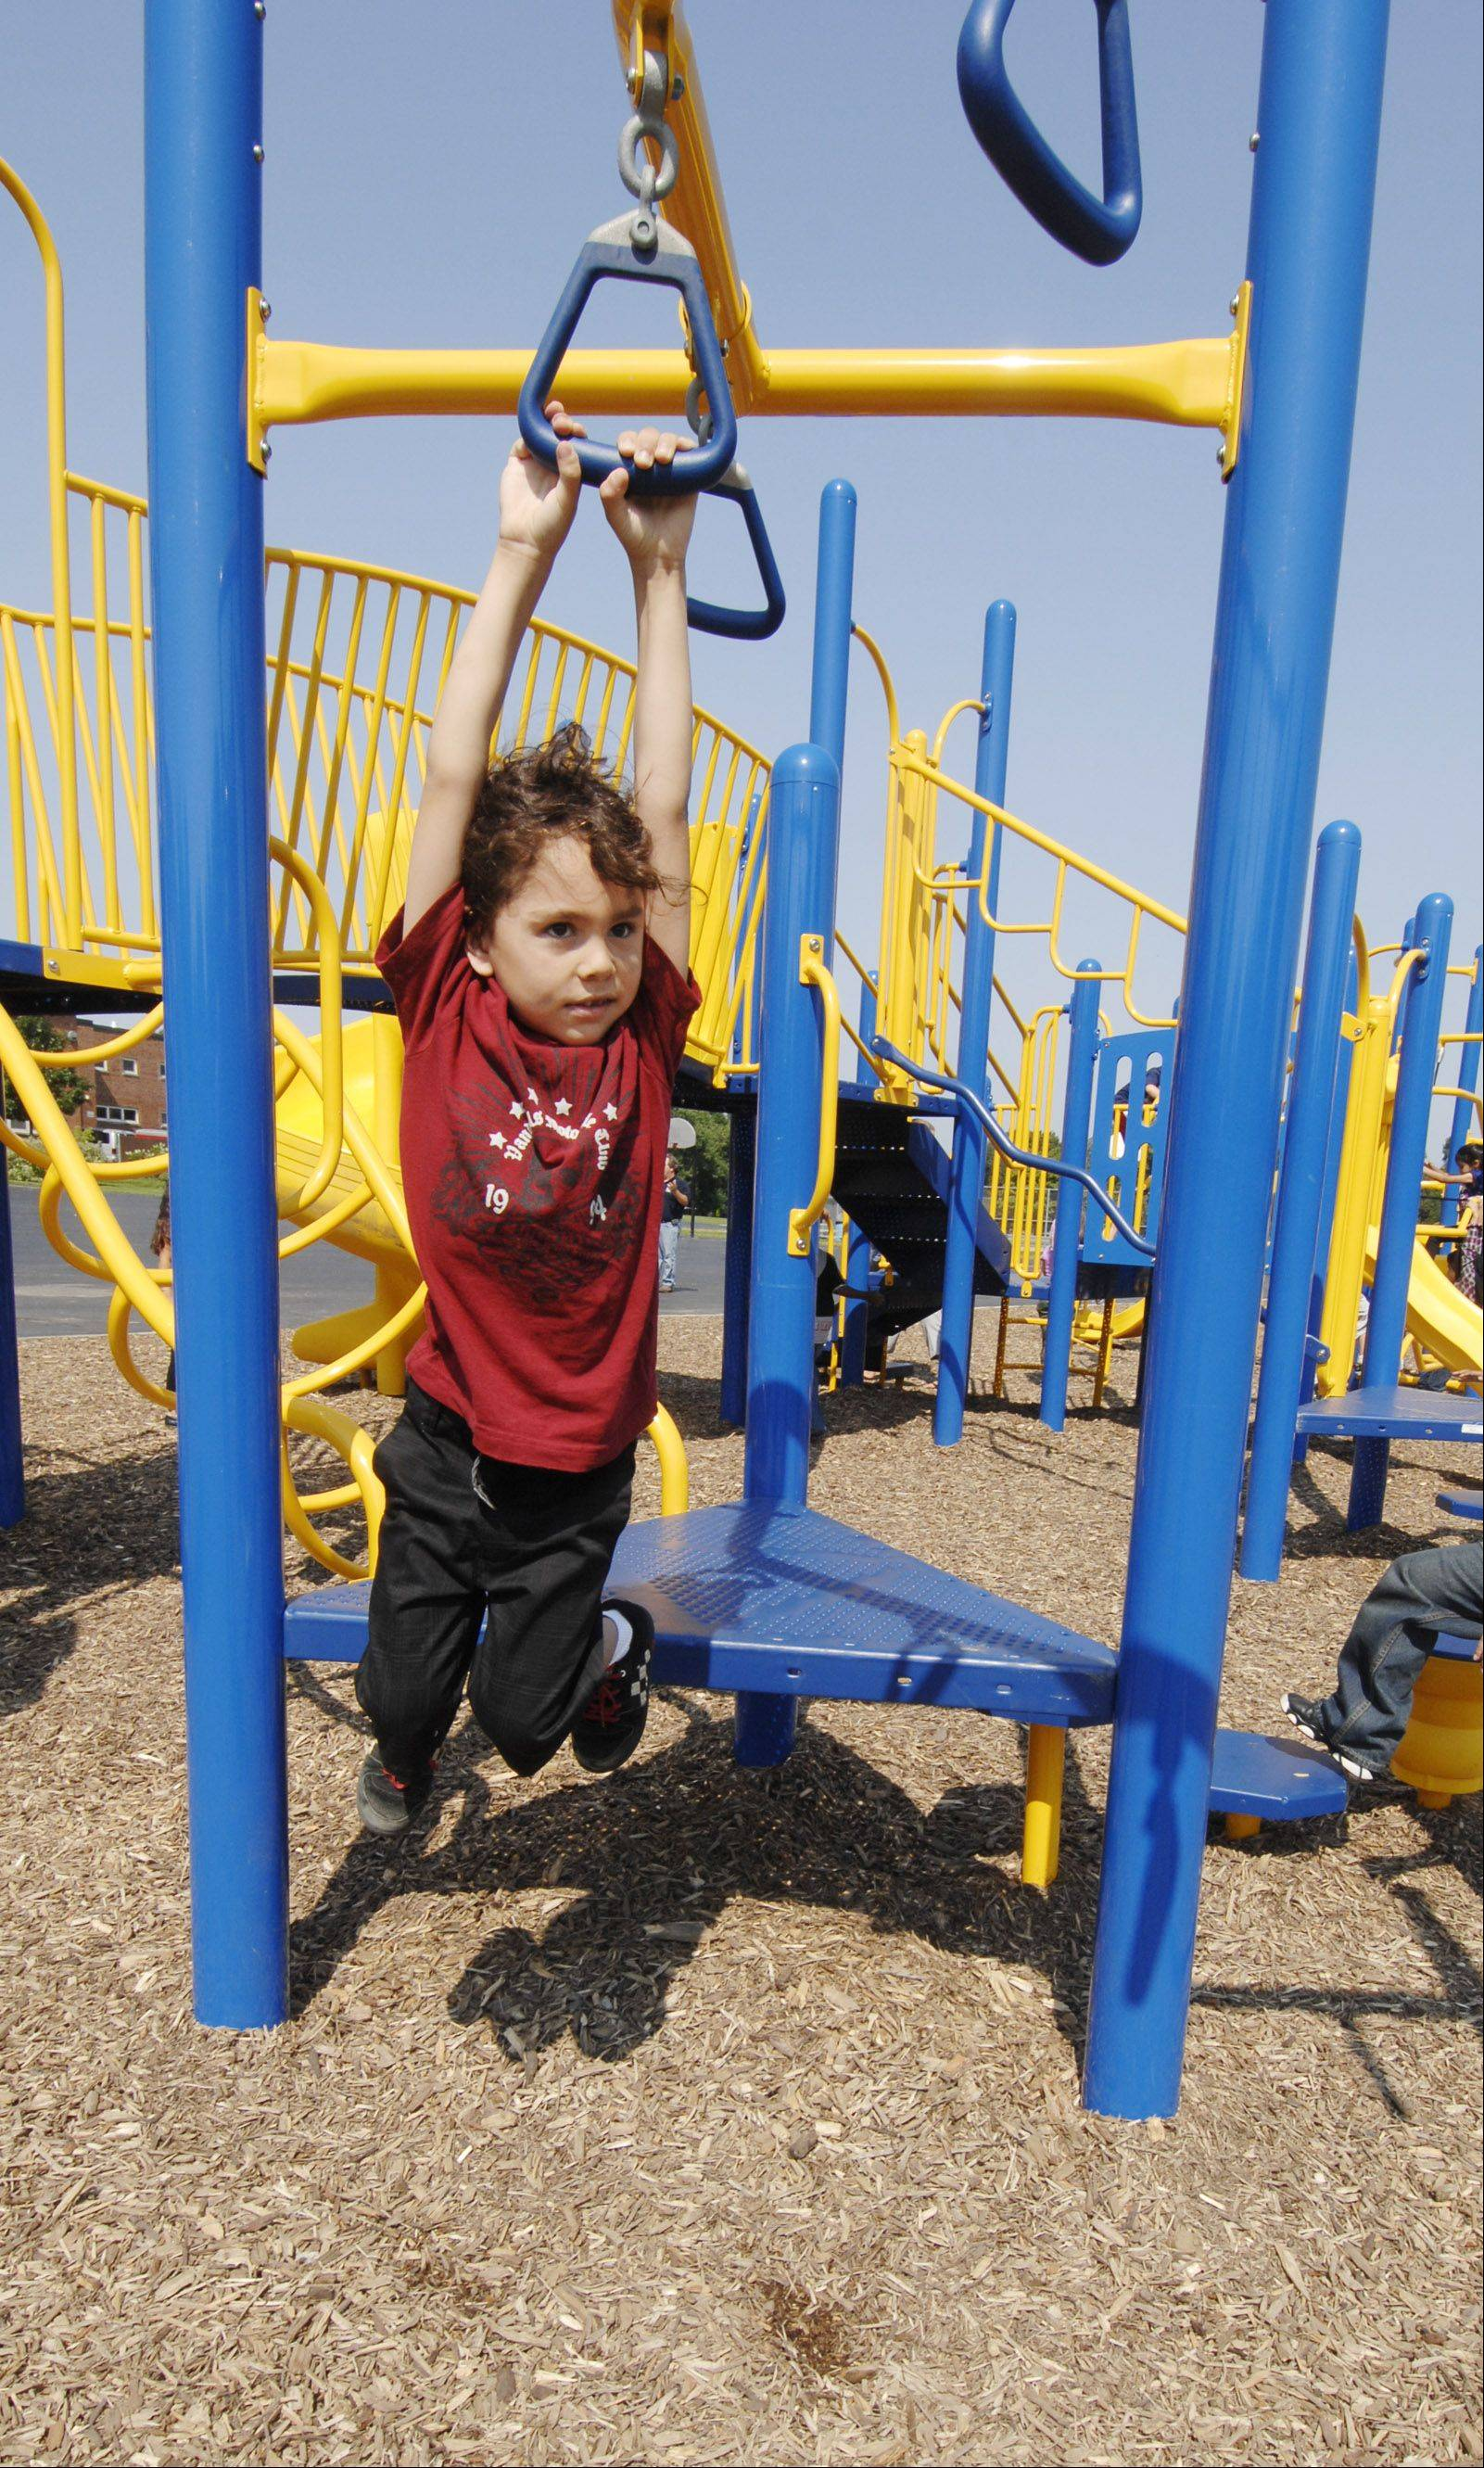 Christian Robles tries out the hand loops on the new playground equipment.